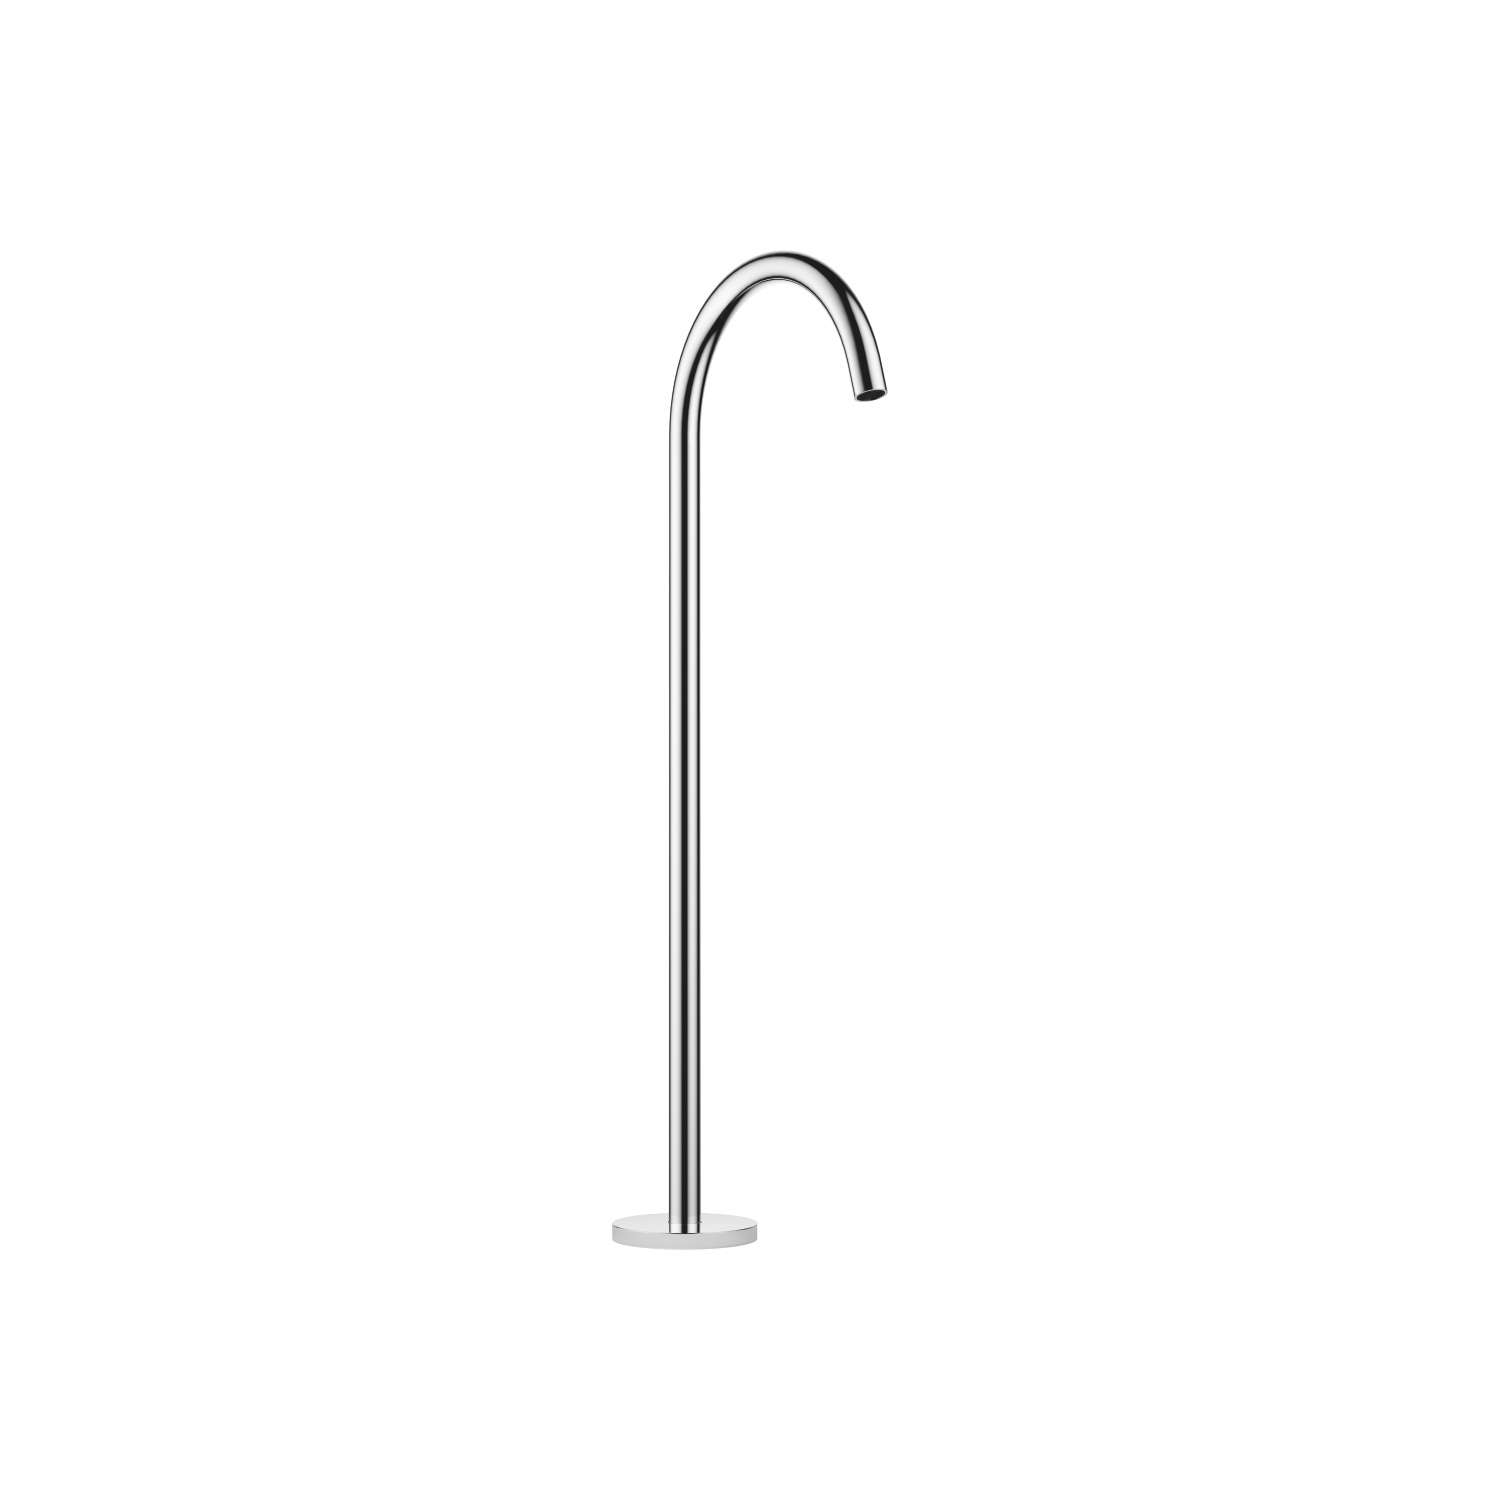 bath spout without diverter for free-standing assembly - polished chrome